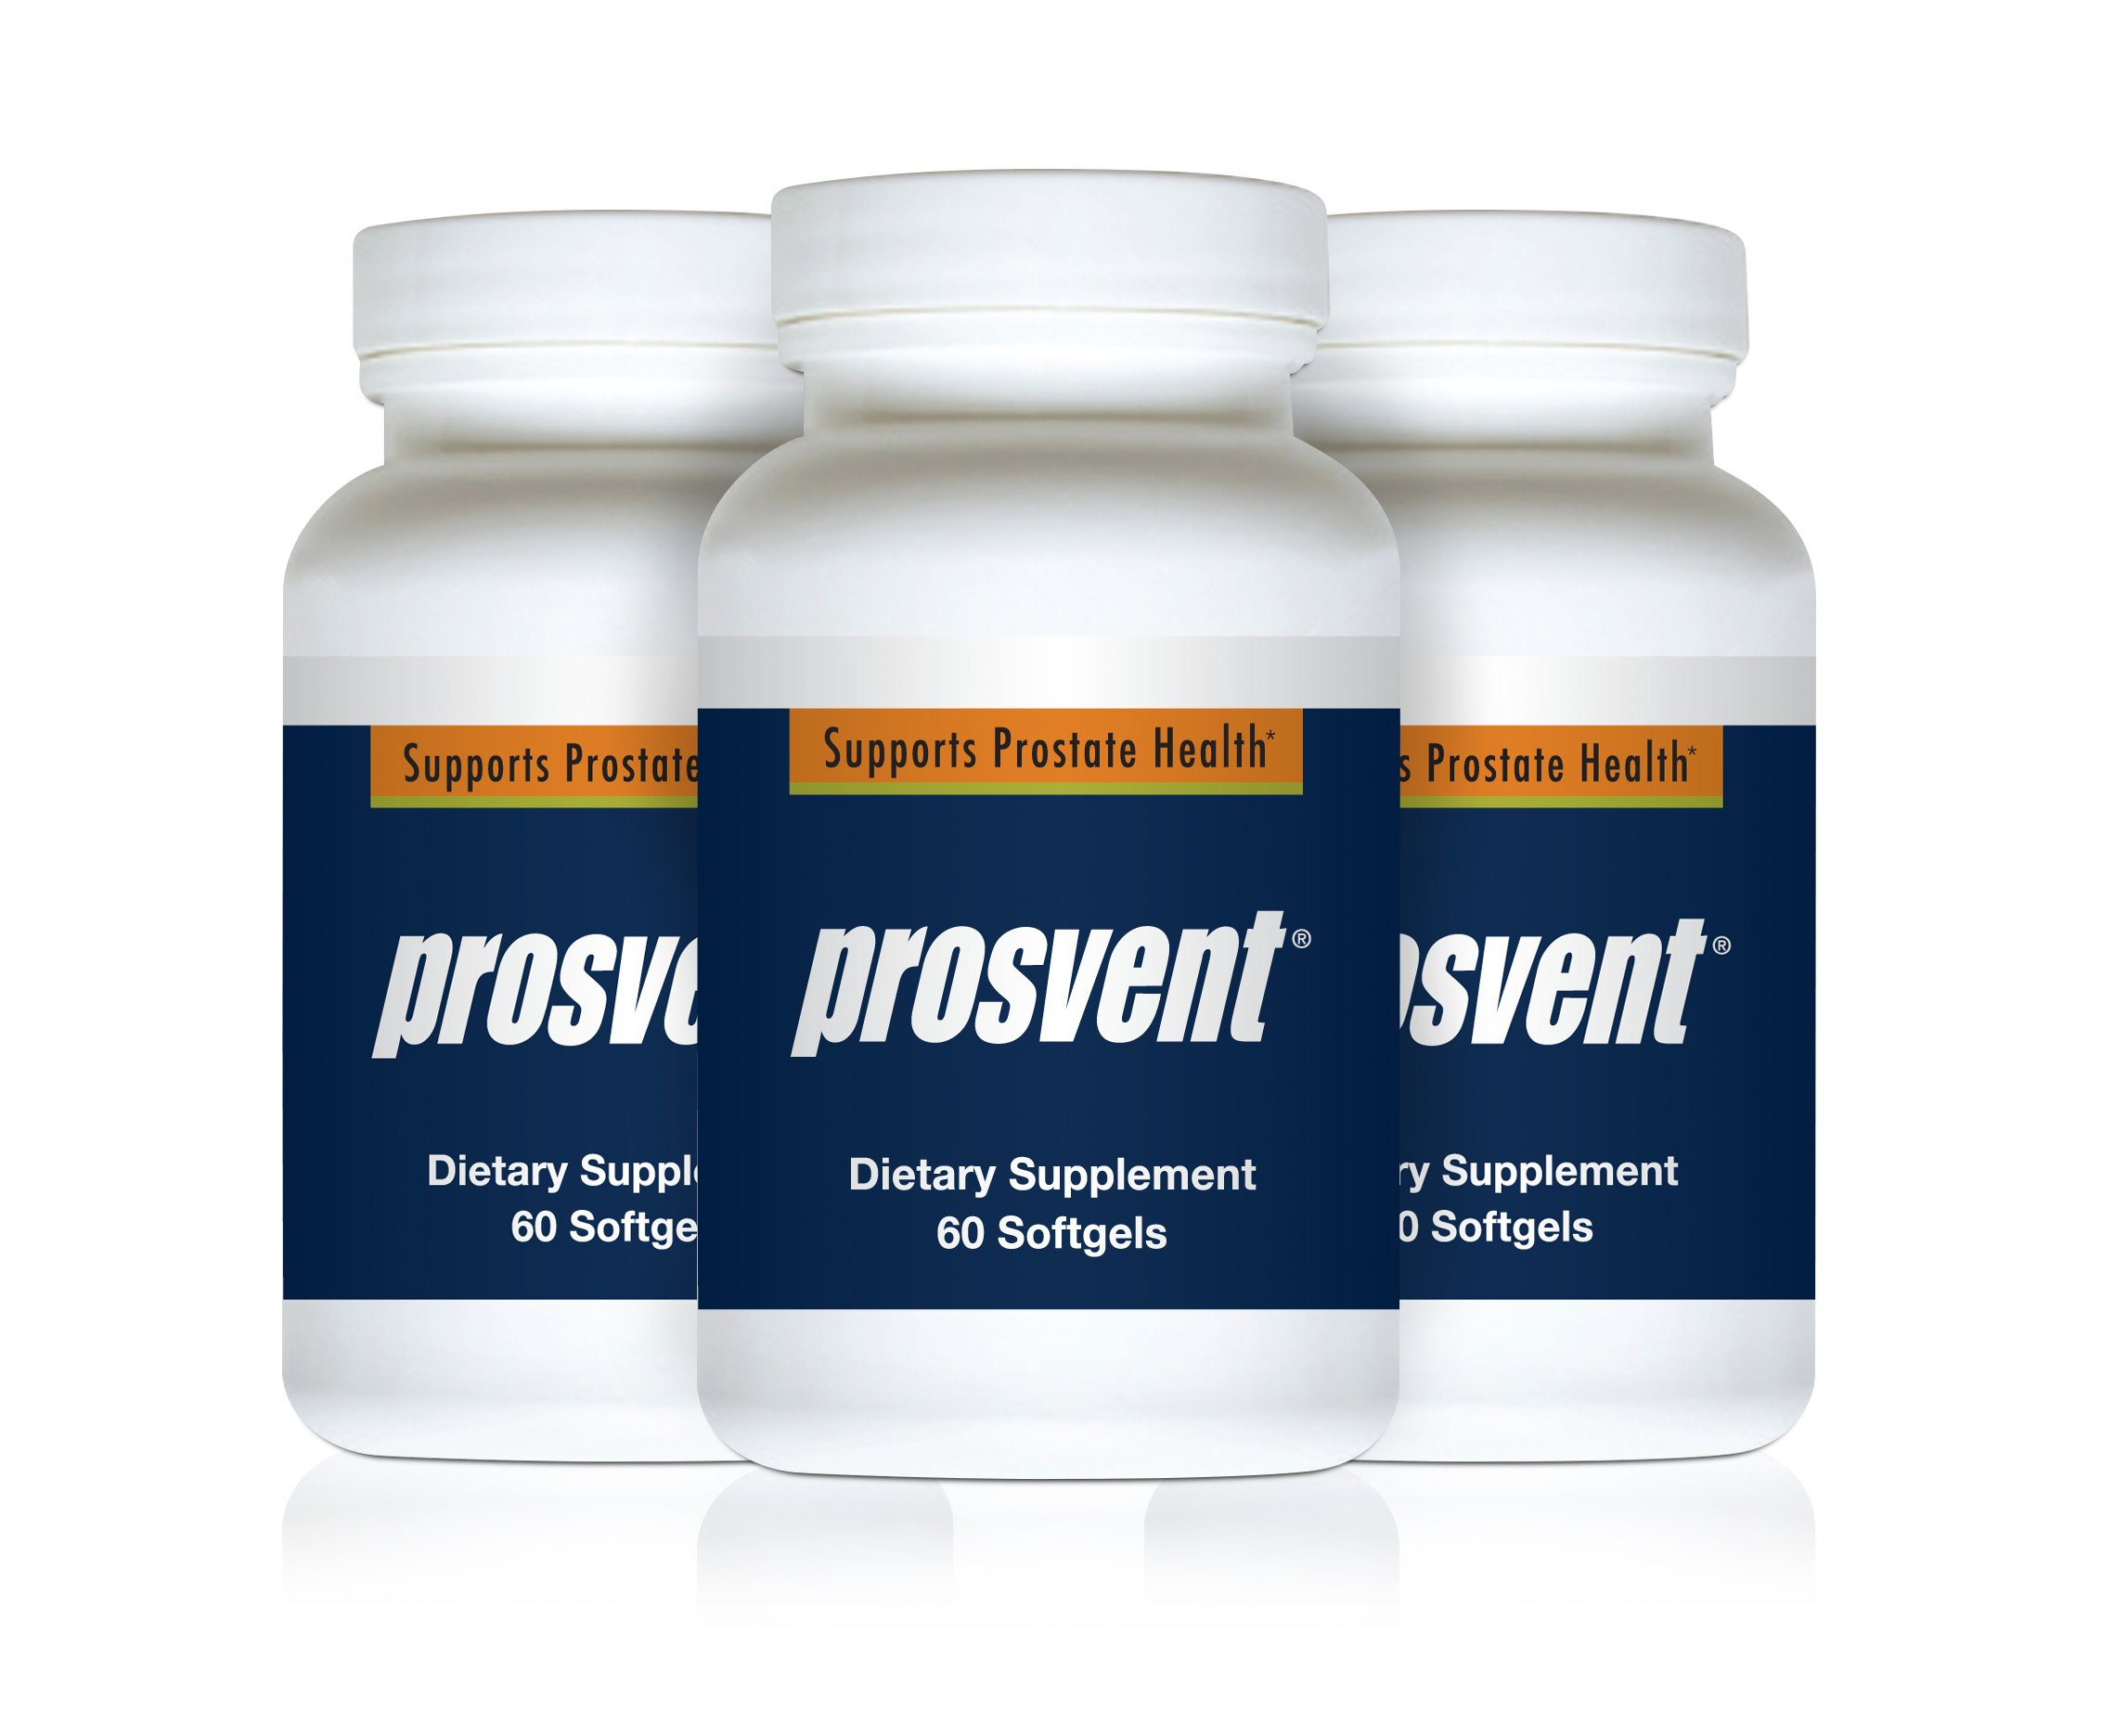 PROSVENT-NATURAL PROSTATE HEALTH SUPPLEMENT -Clinically Tested Ingredients- Reduce Urgency & Frequency. Improve Flow, Sleep, Health & Quality Of Life. OVER 180 MILLION DOSES SOLD! –3 Month Supply